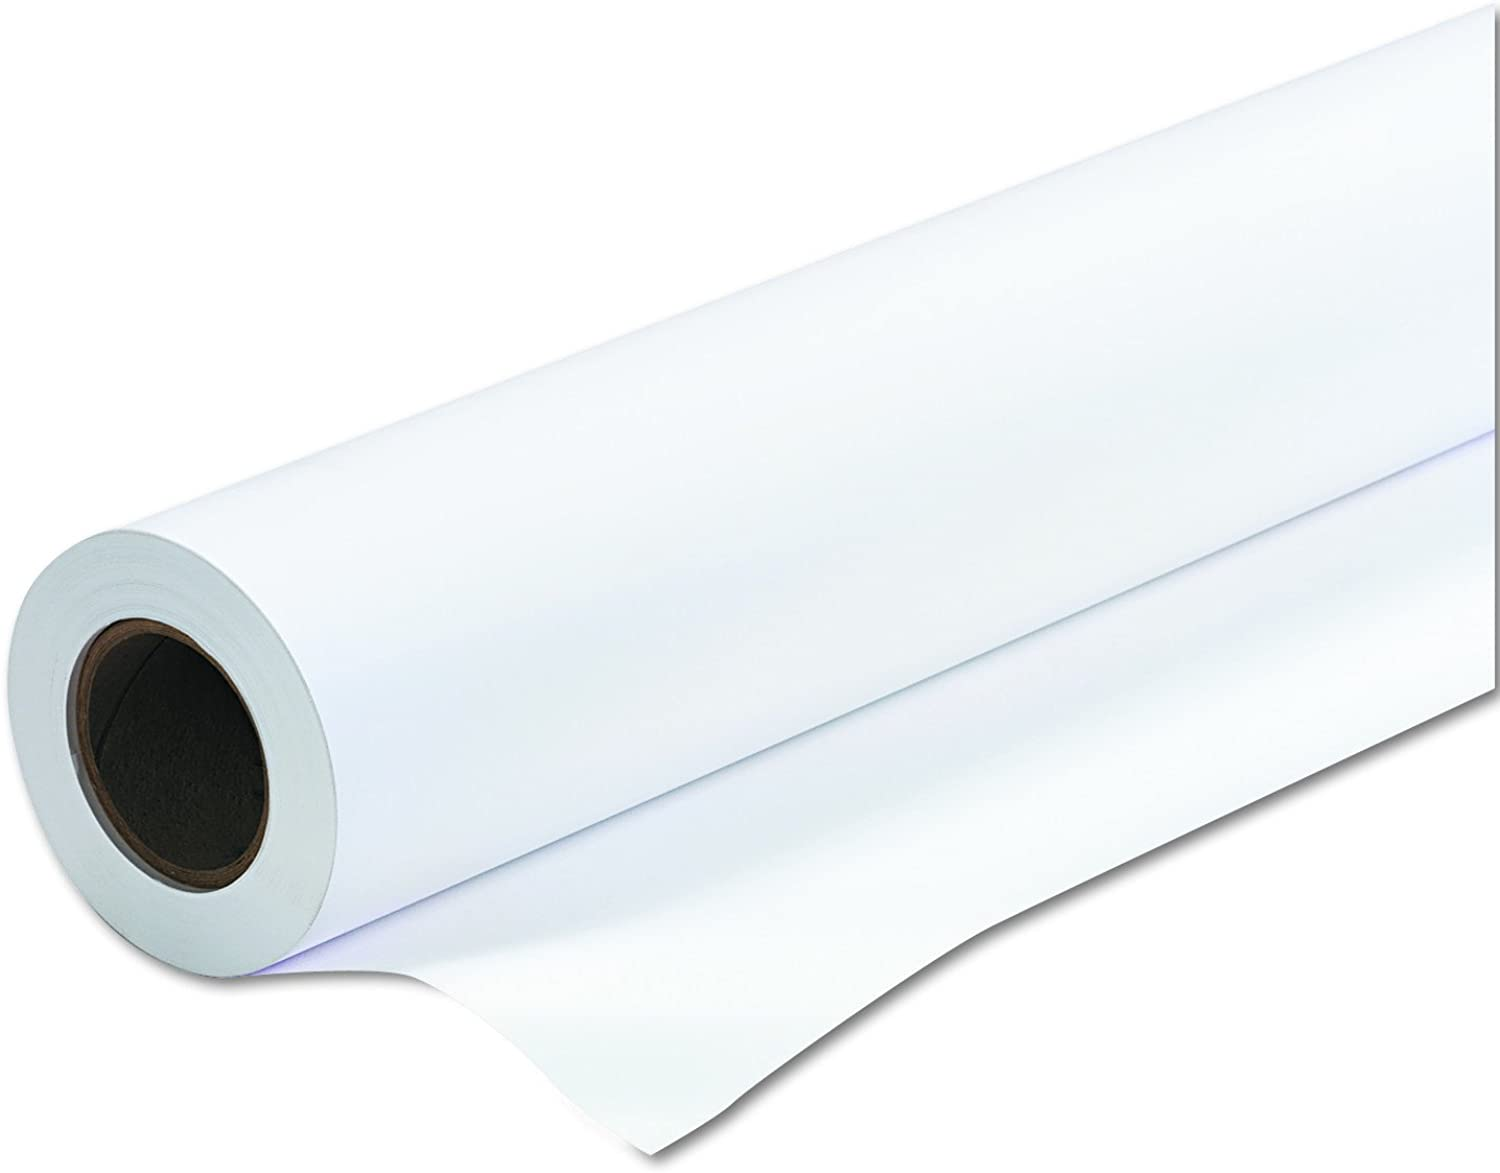 PM Company Perfection Amerigo Check 24 Wide Format Ink Jet Rolls, 24 Inches x 150 Feet, White, 1 Carton (45151)